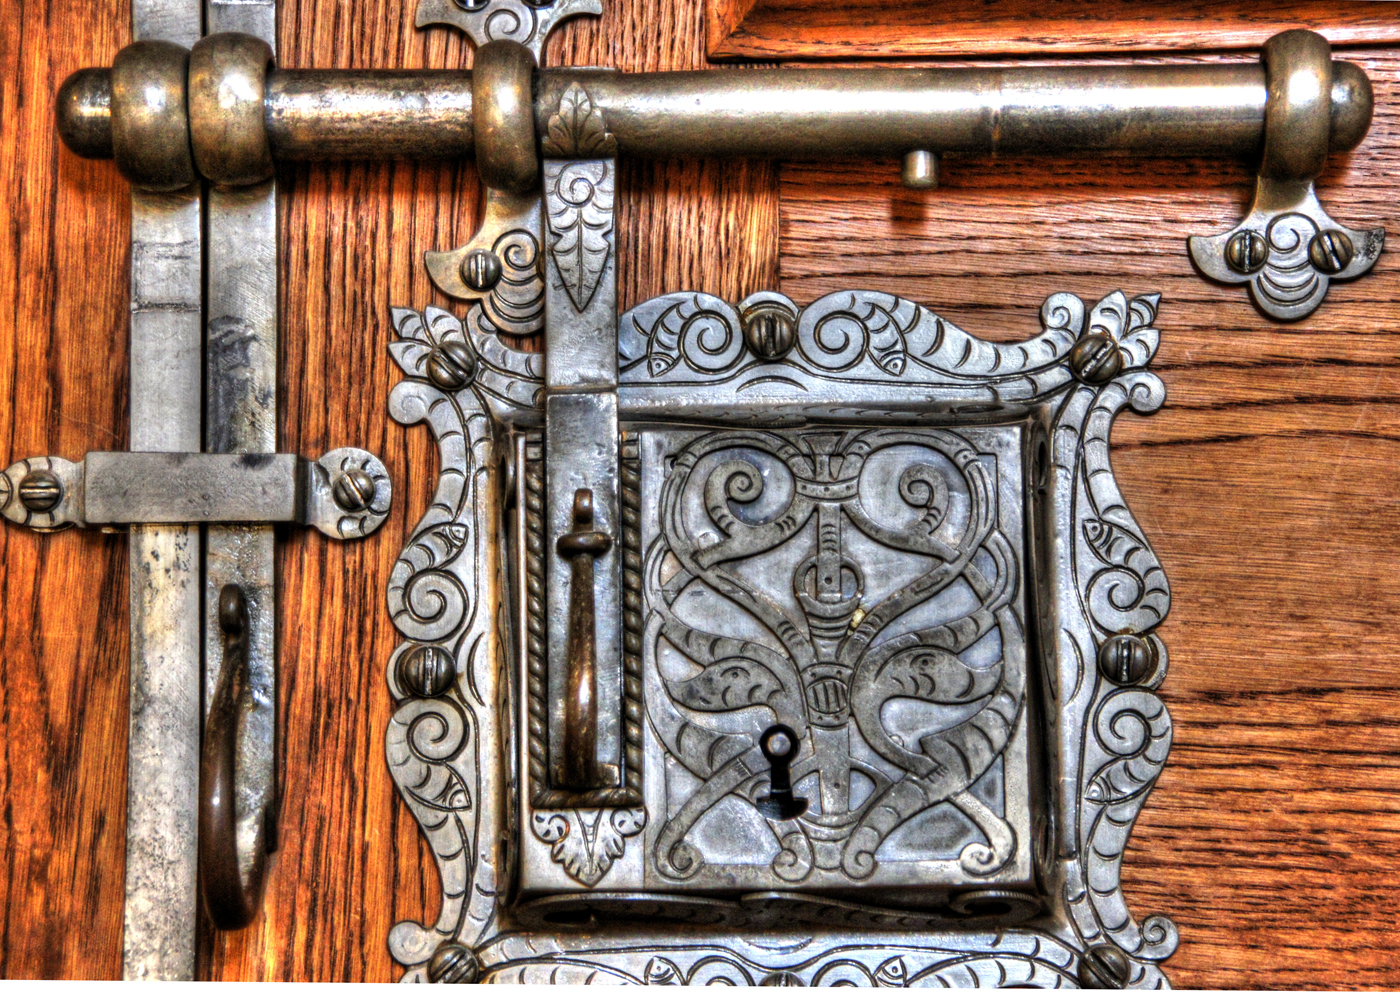 Golden Room door latch (photo by Heribert Pohl)